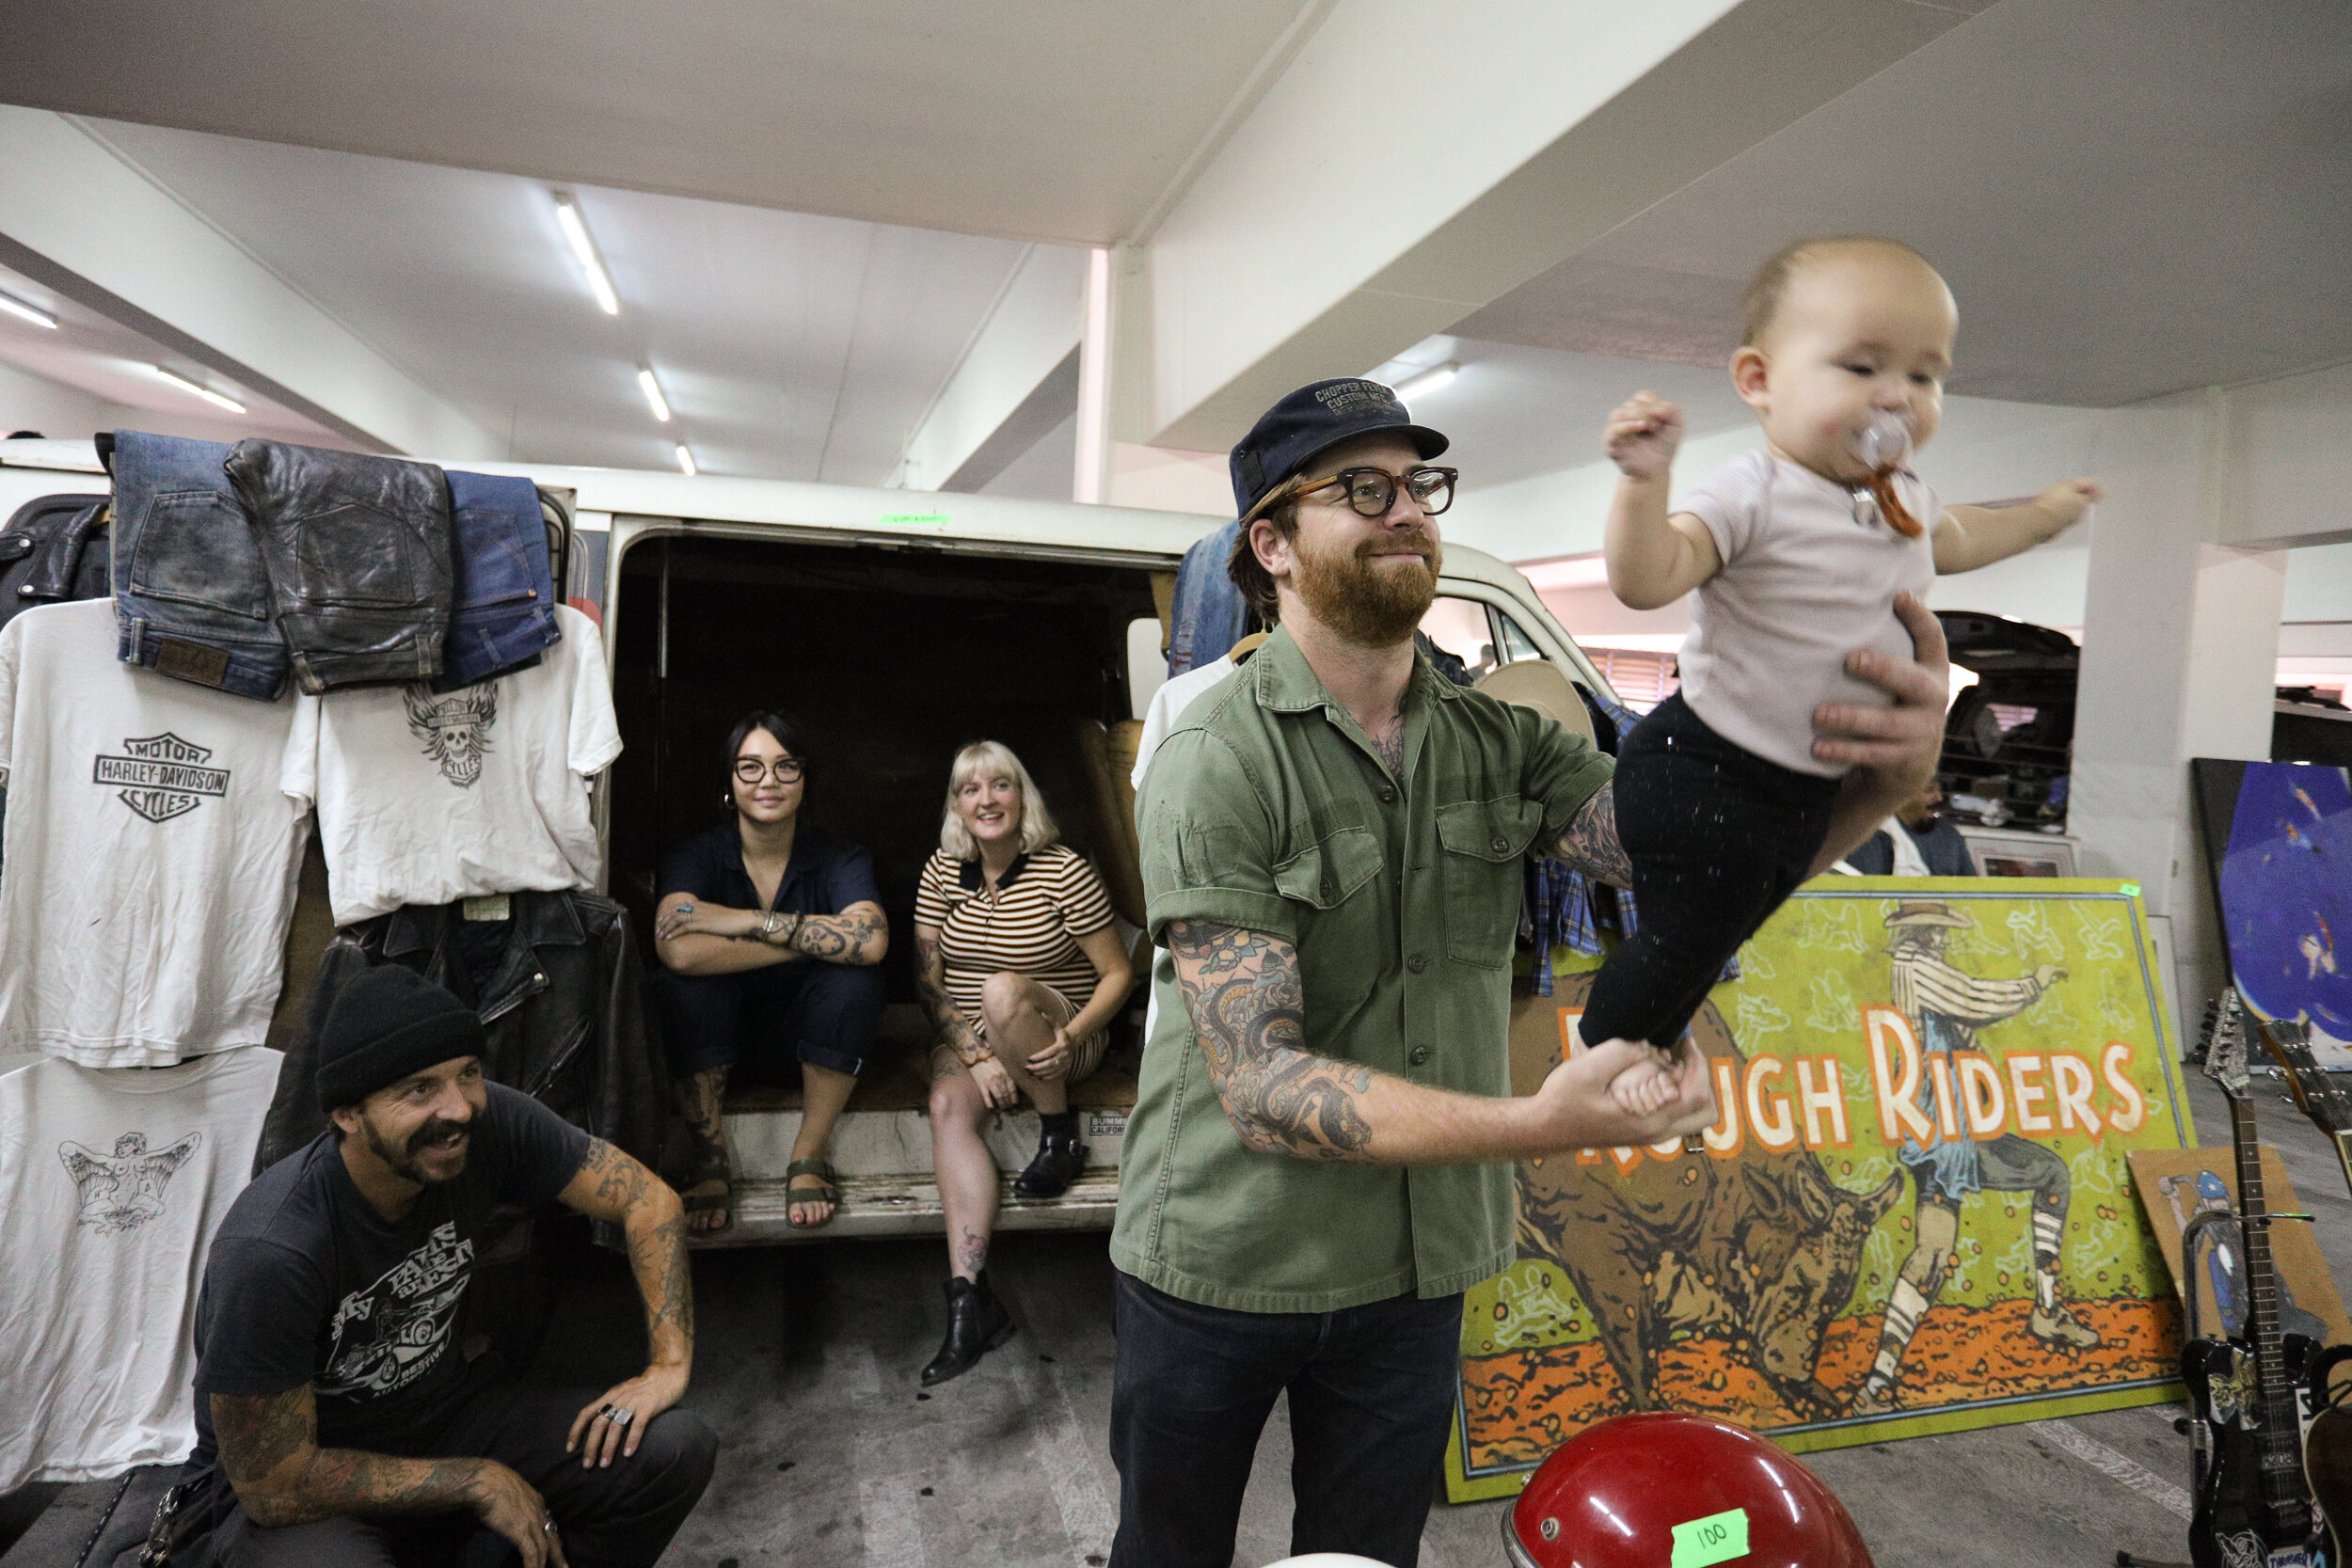 Nicholas Slobin/ Courier Shawn McKinney holds his baby while his friends look on in enjoyment at the Pasadena City College Flea Market on Sunday, September 1, 2019.